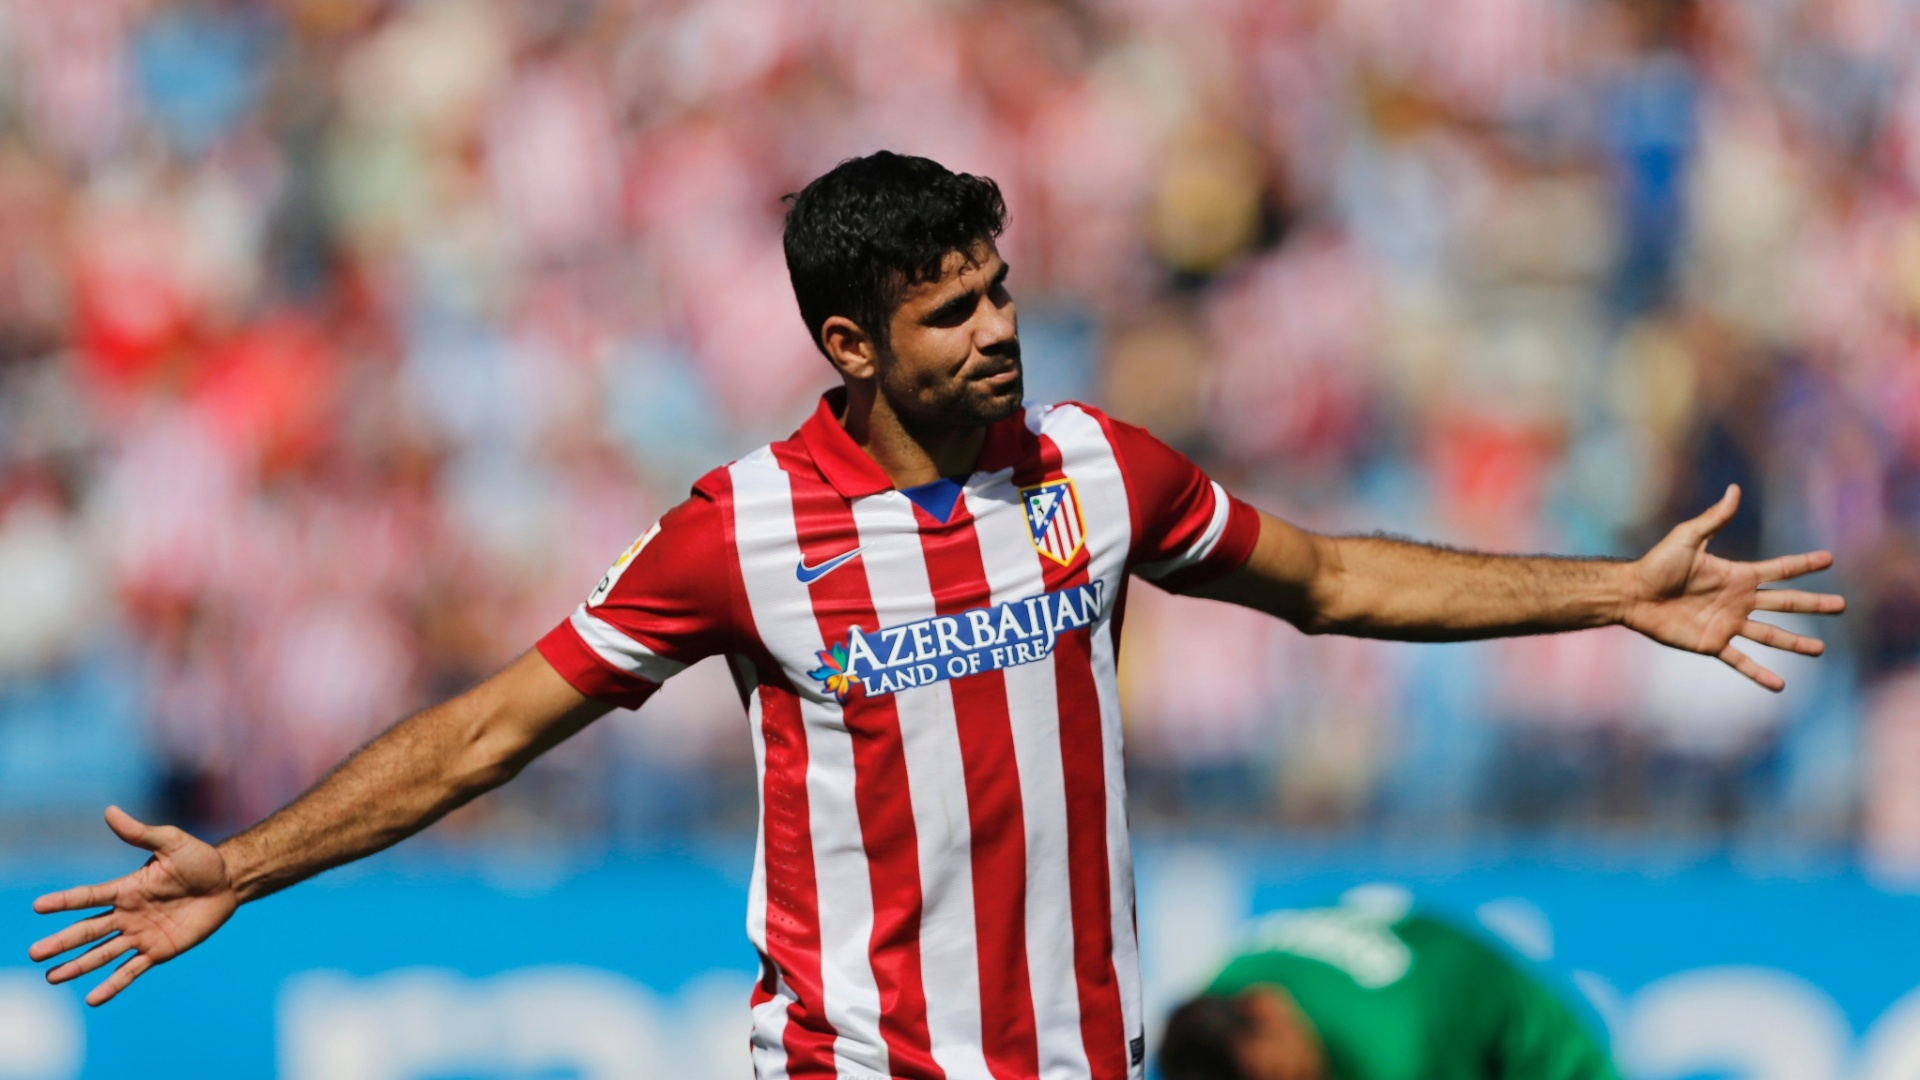 Diego Costa Football Wallpaper Backgrounds And Picture